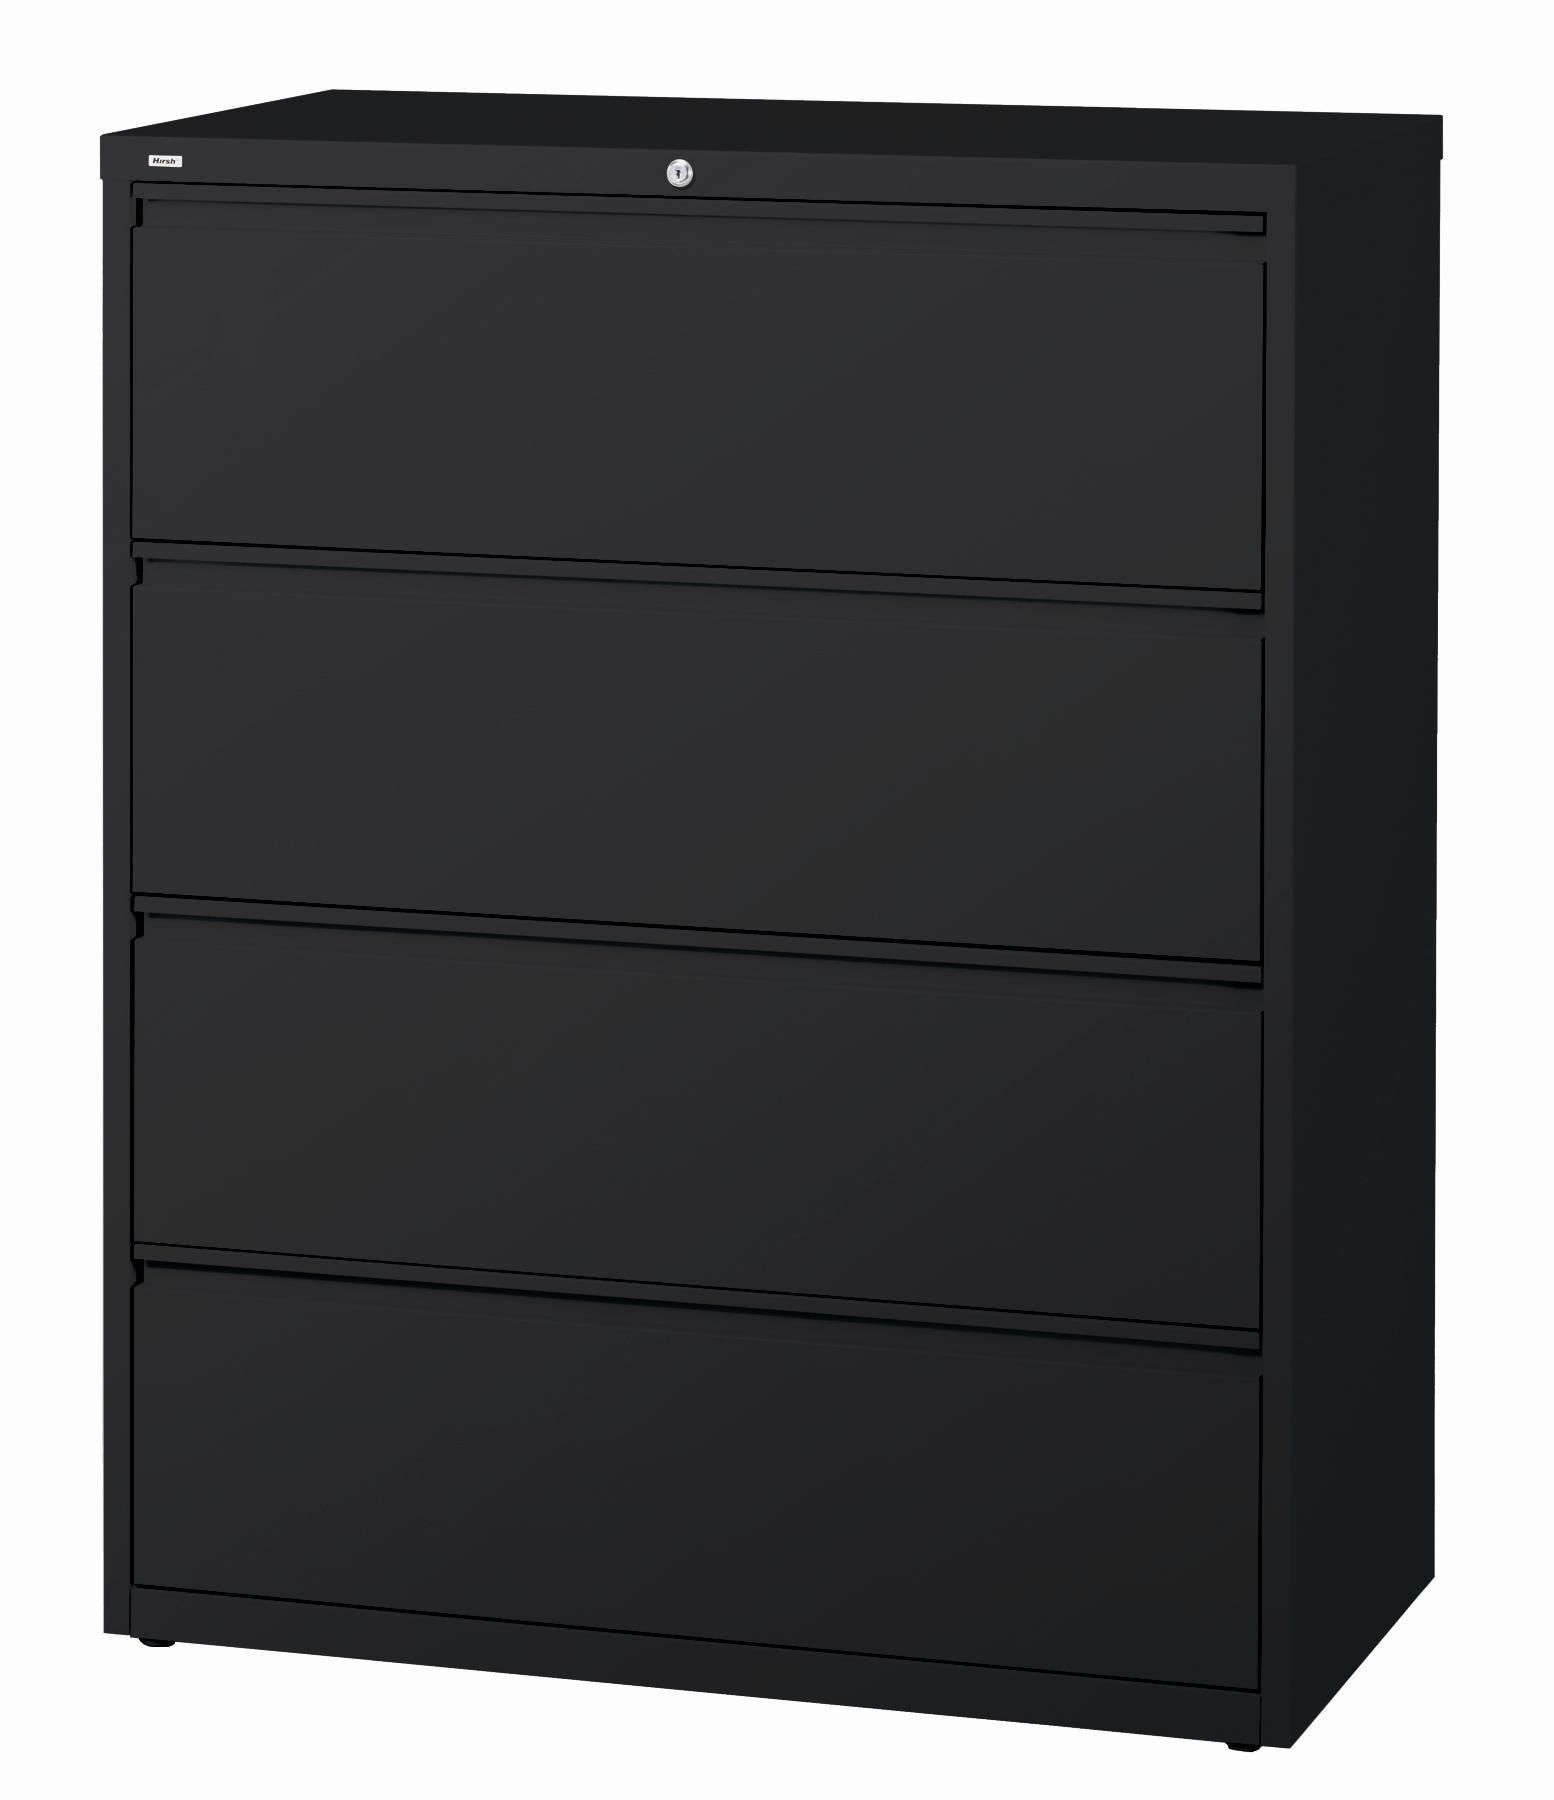 Elegant Hirsh HL10000 Series 42 Inch Wide 4 Drawer Commercial Lateral File Cabinet    Free Shipping Today   Overstock   13574246